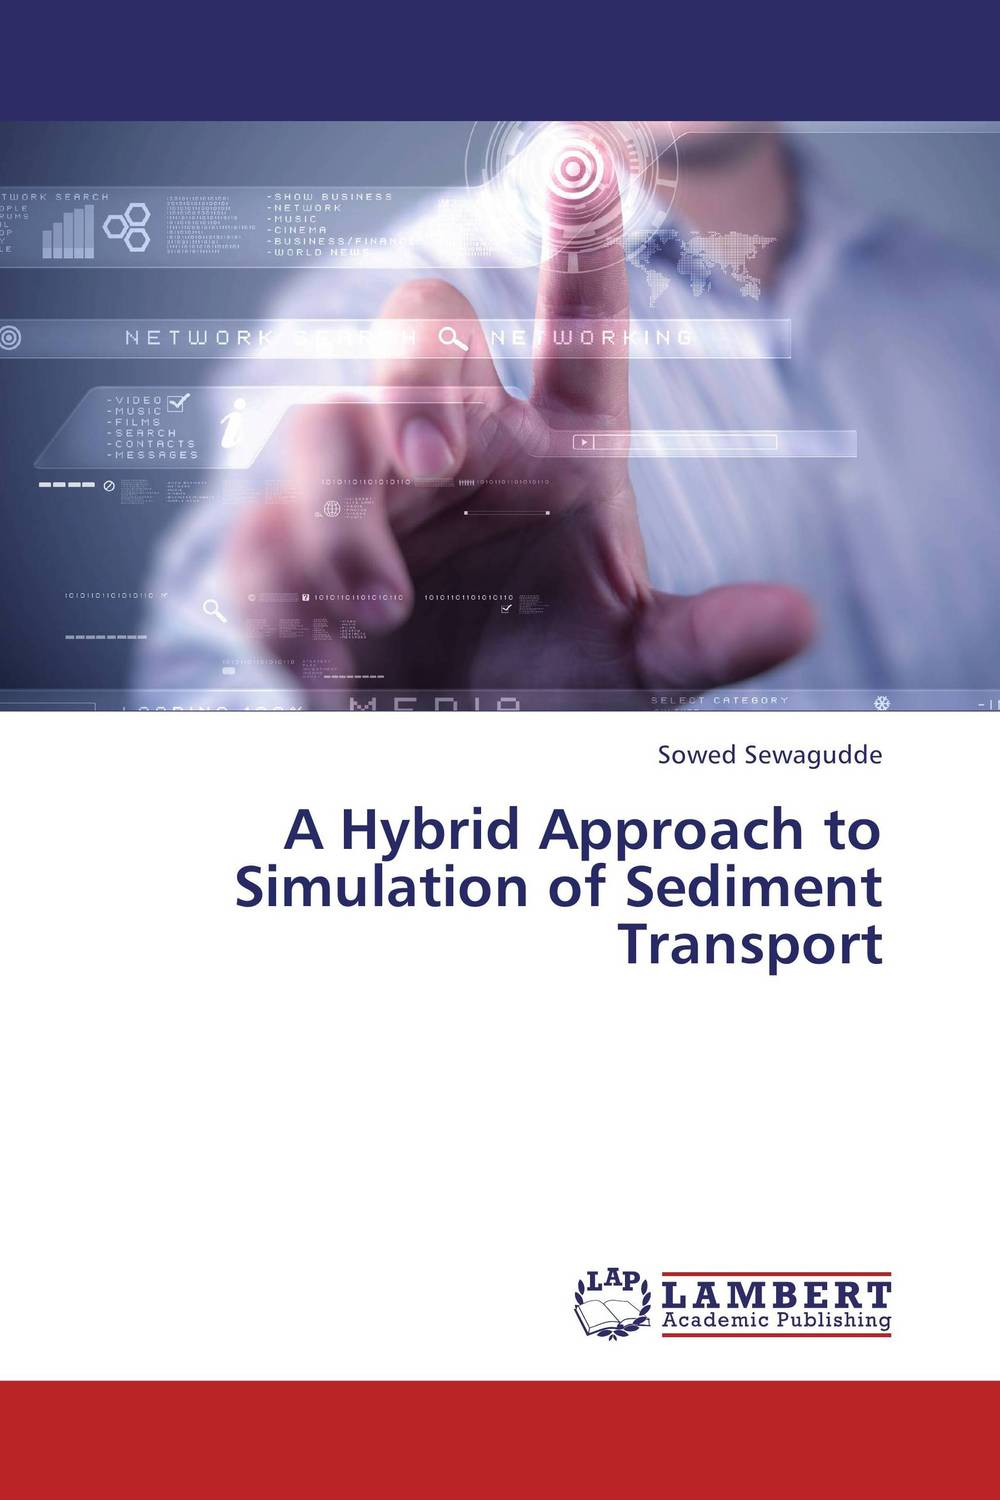 A Hybrid Approach to Simulation of Sediment Transport david swanson the data driven leader a powerful approach to delivering measurable business impact through people analytics